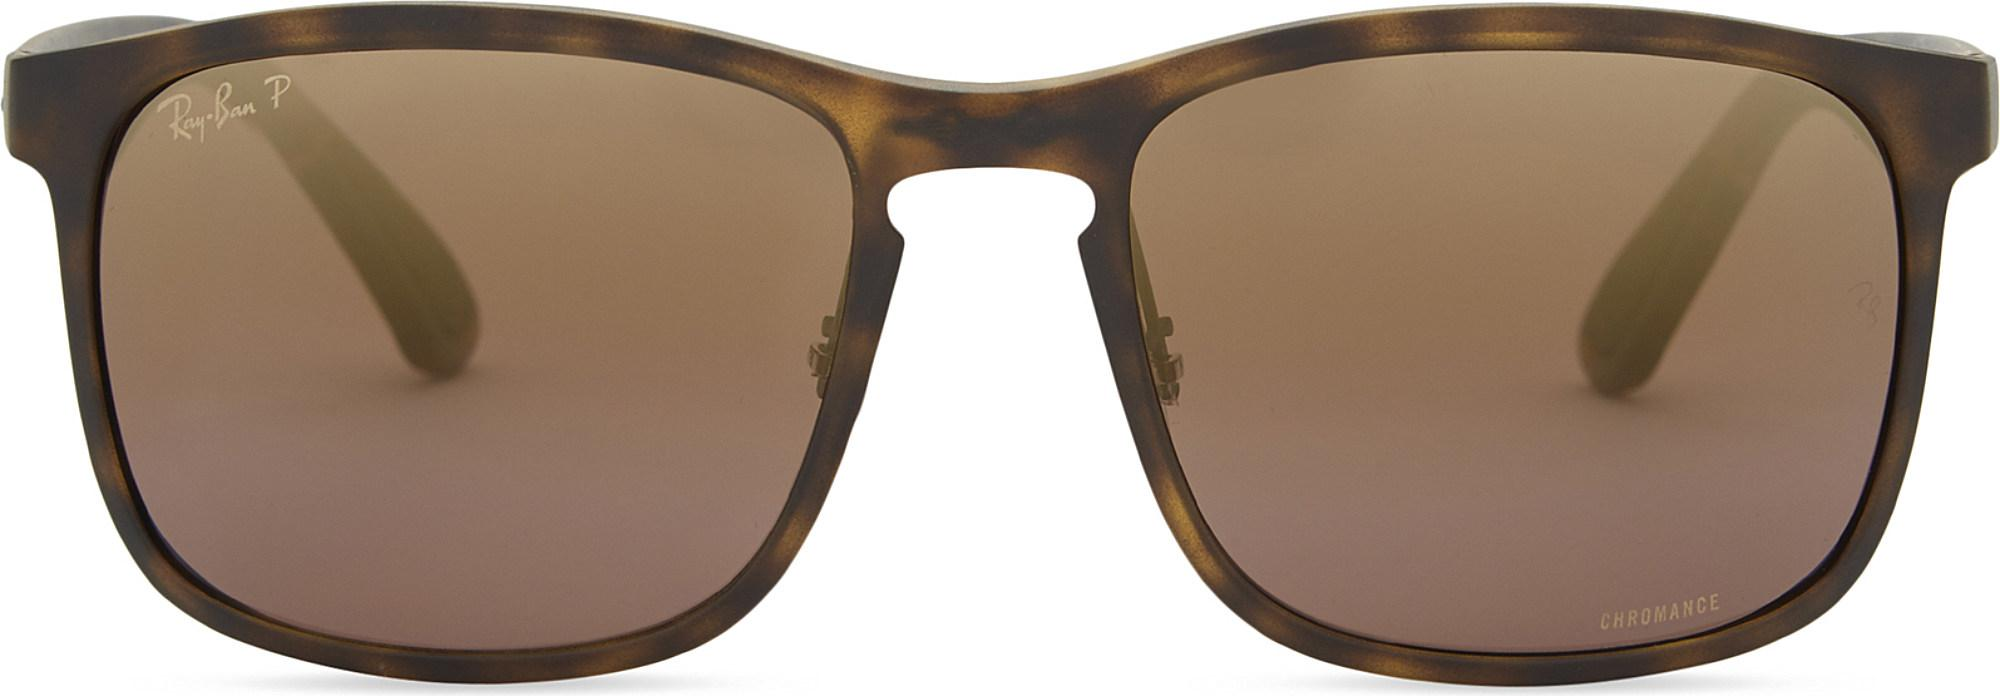 186ef795fad Ray-Ban Rb4264 Chromance® Havana Square-frame Sunglasses in Brown - Lyst